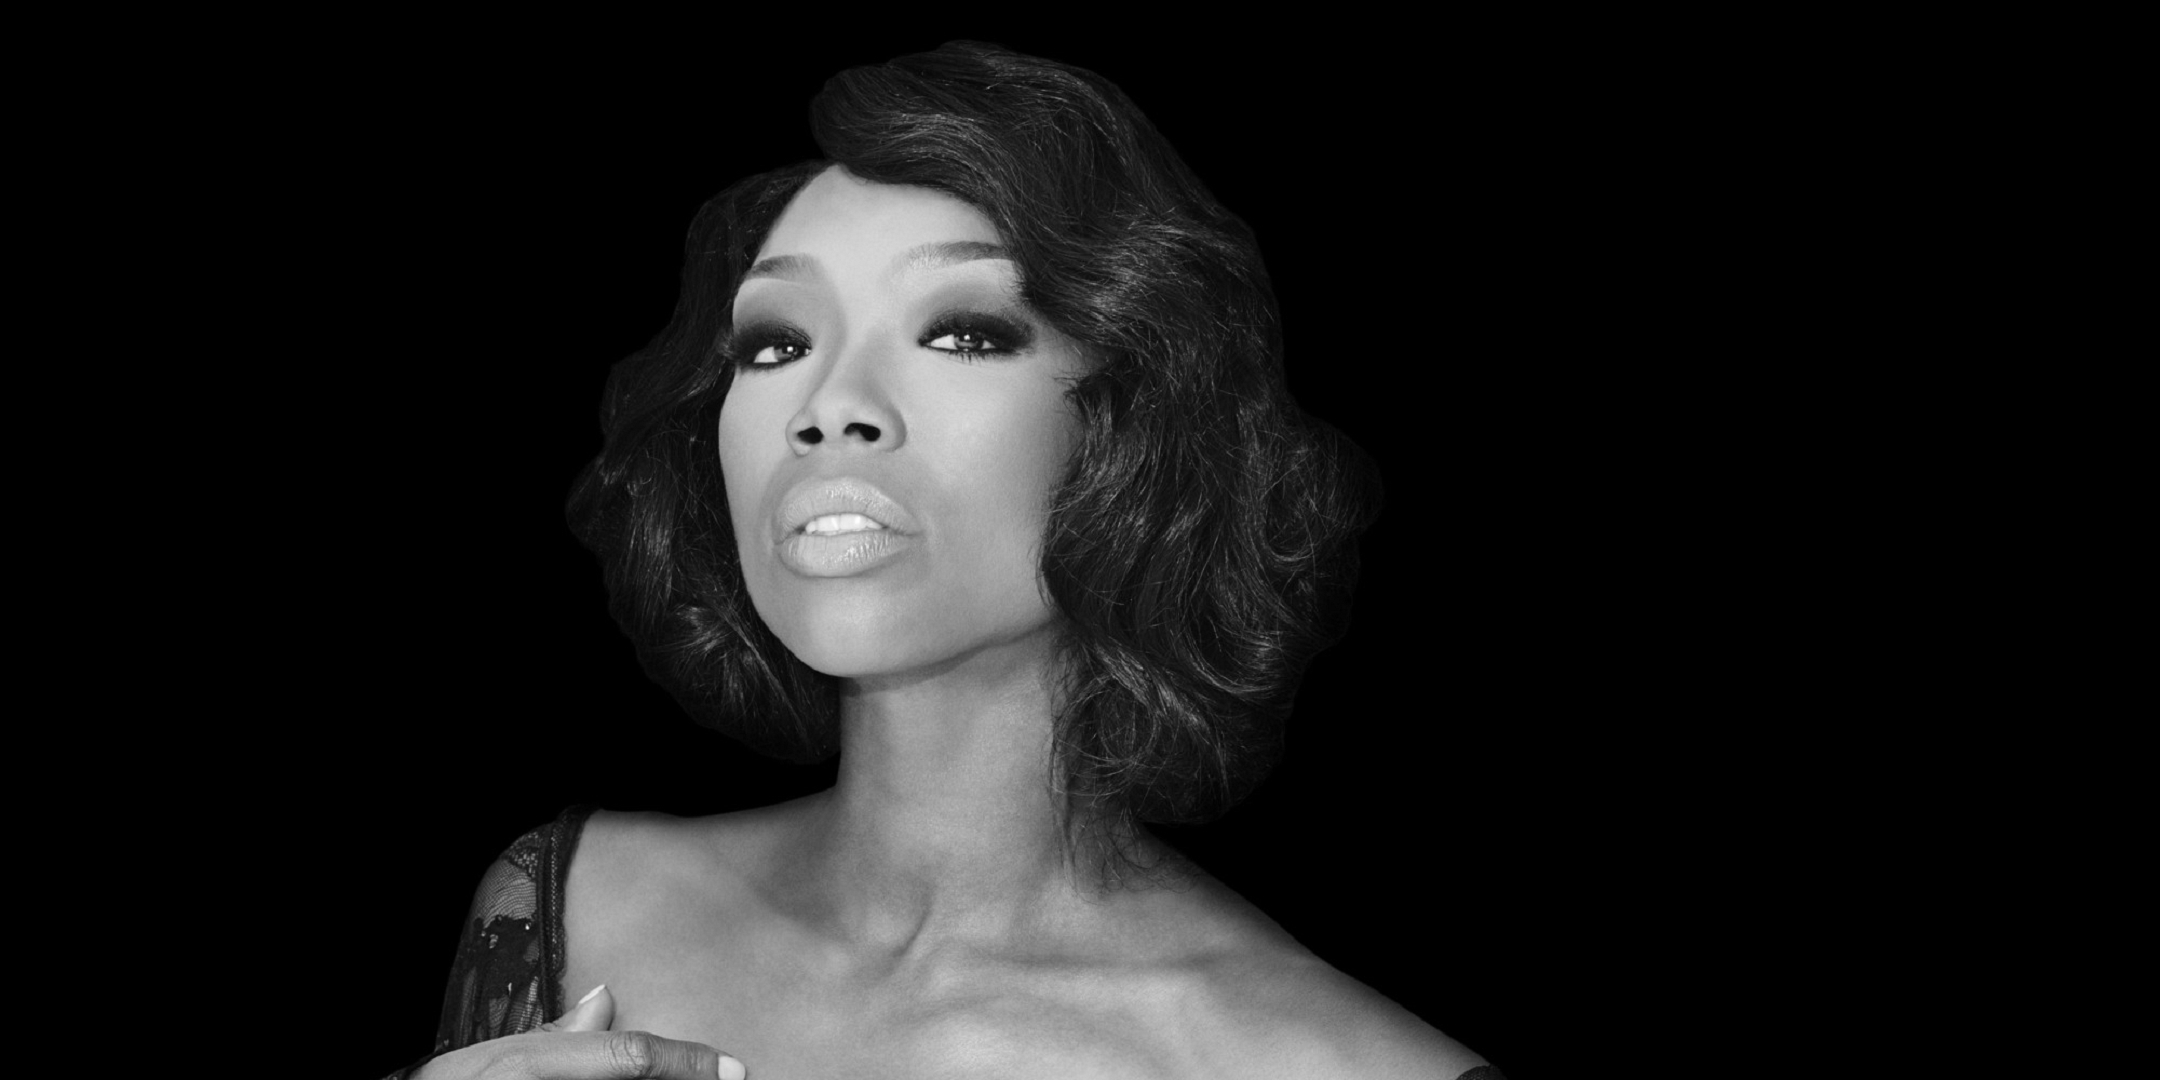 Brandy Hd Desktop